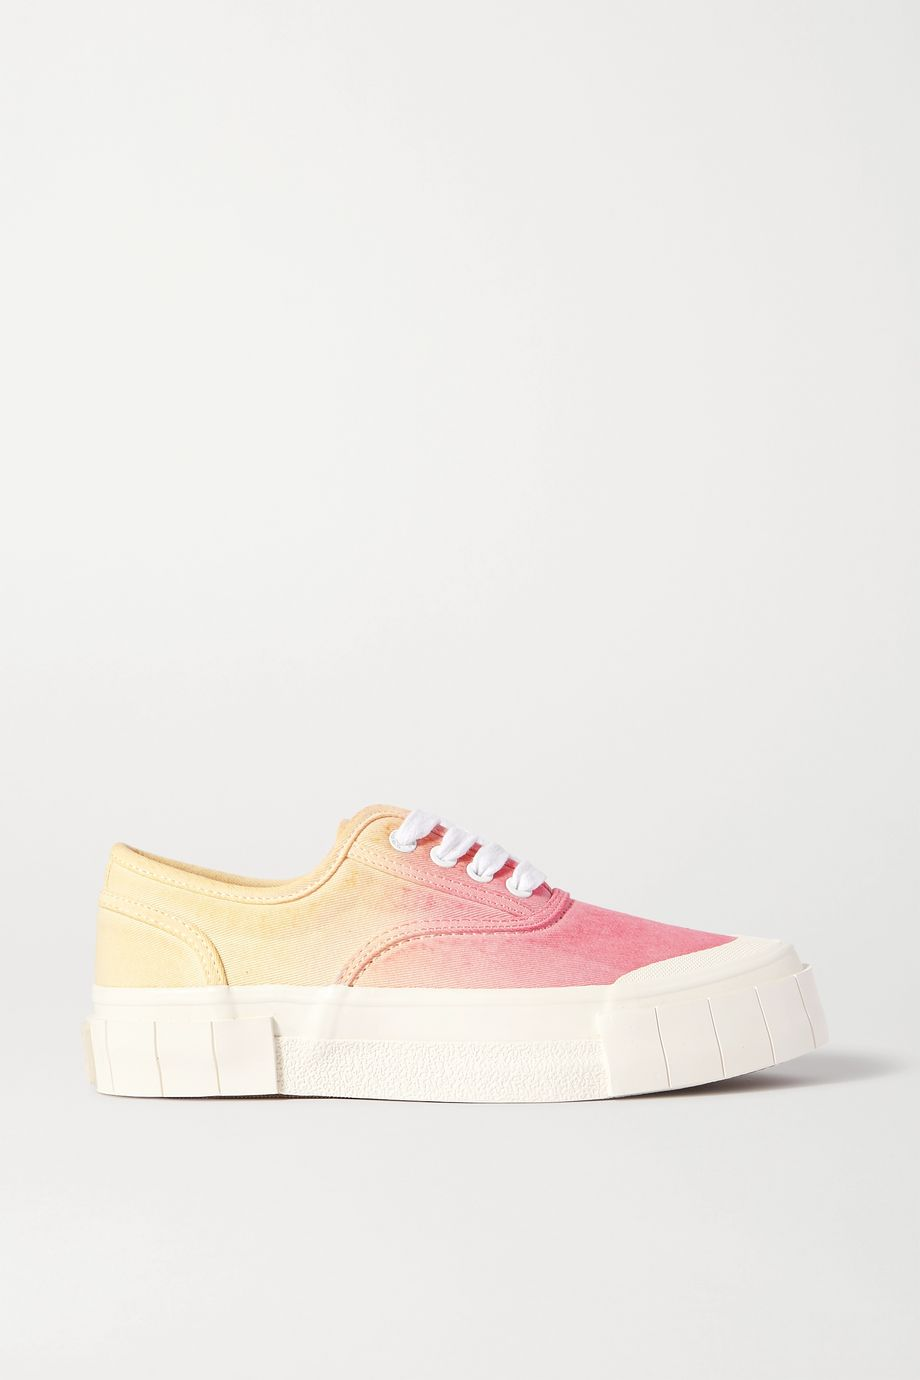 GOOD NEWS + NET SUSTAIN Ace ombré organic cotton-canvas sneakers